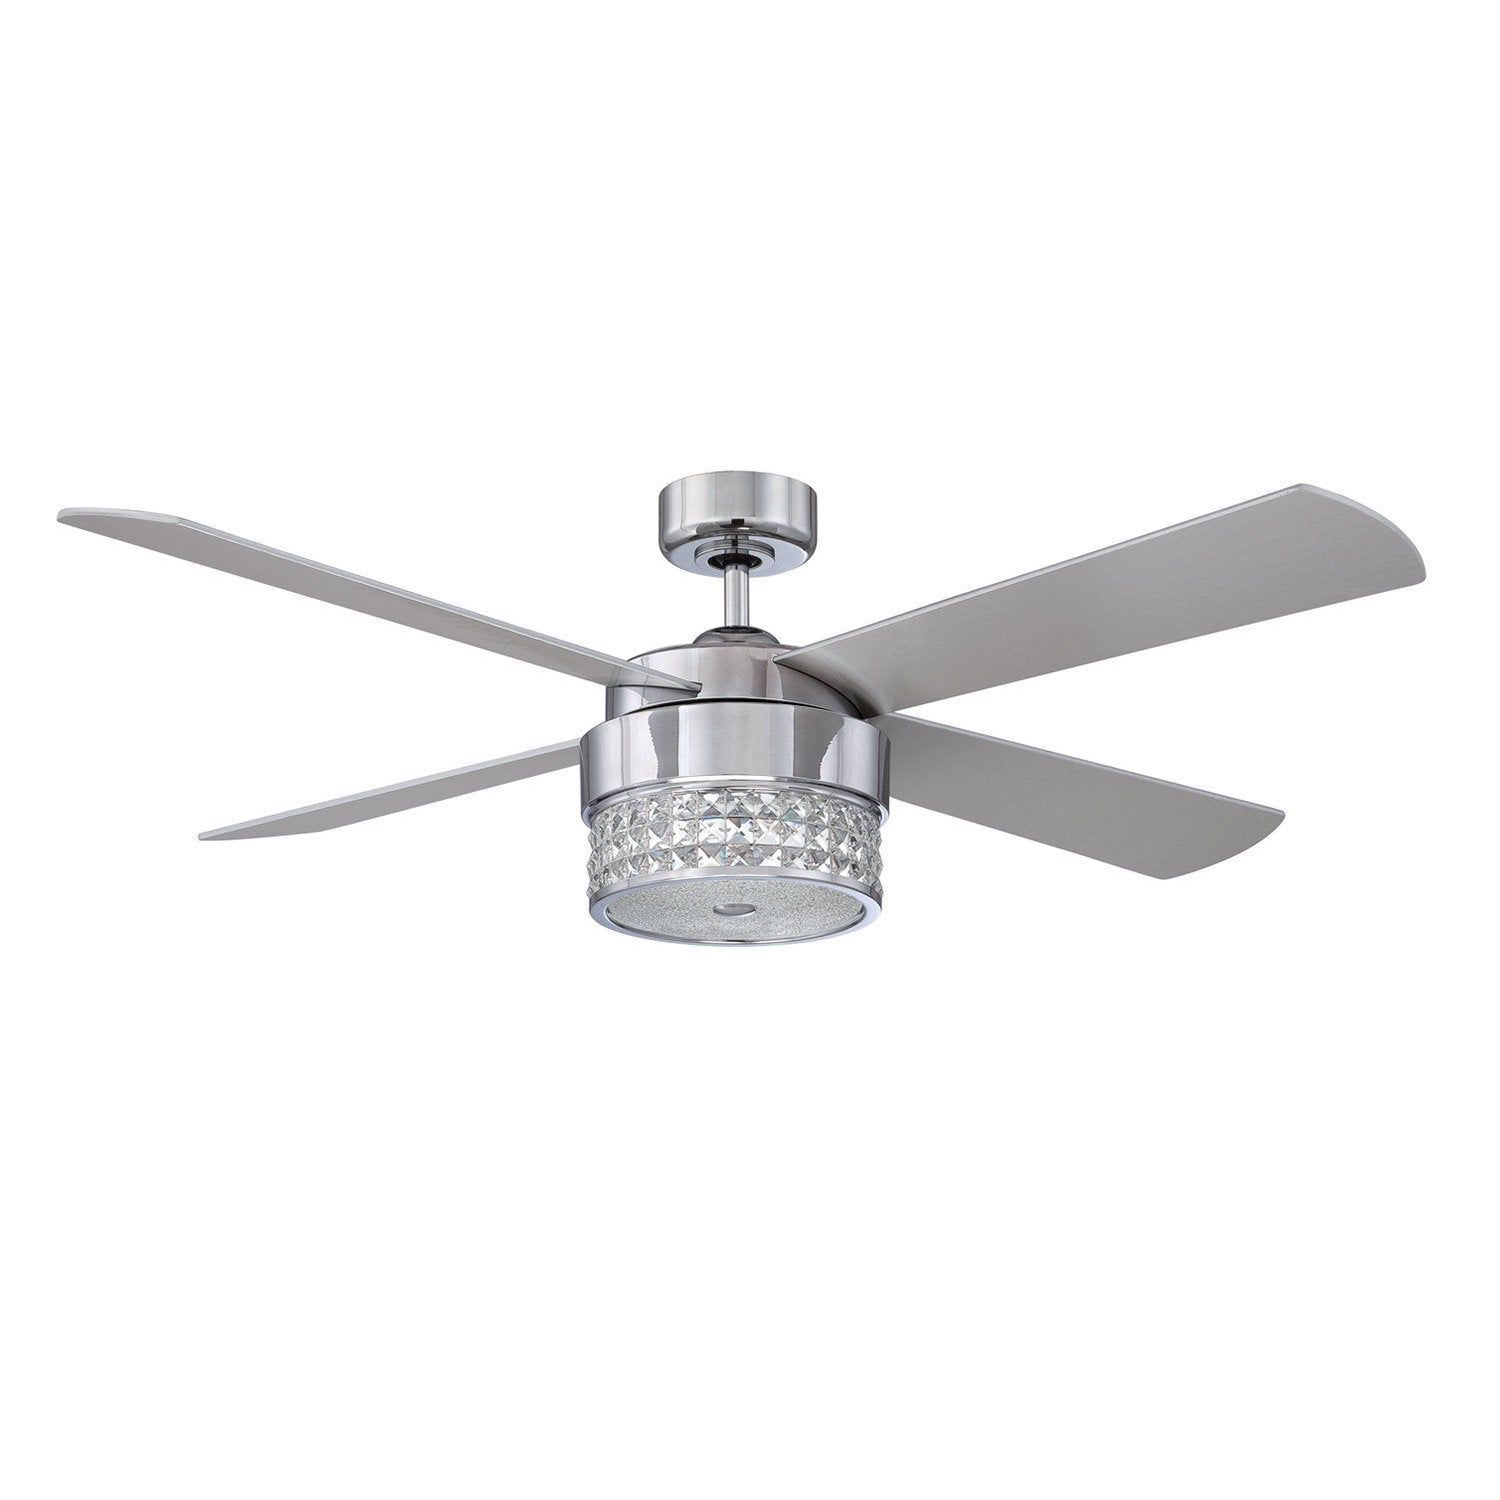 Celestra Chrome and Optic Crystal 52 inch Ceiling Fan Free